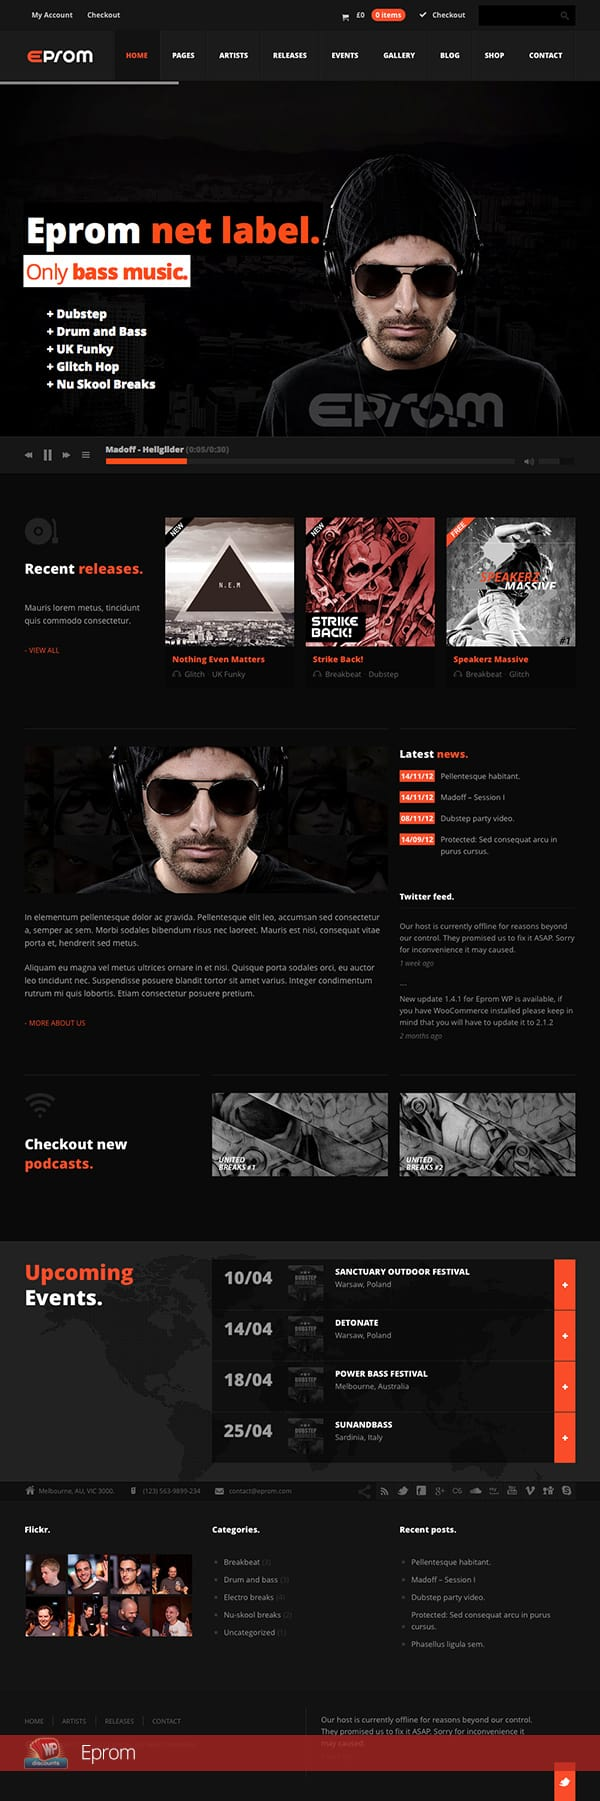 Eprom music label theme for WordPress